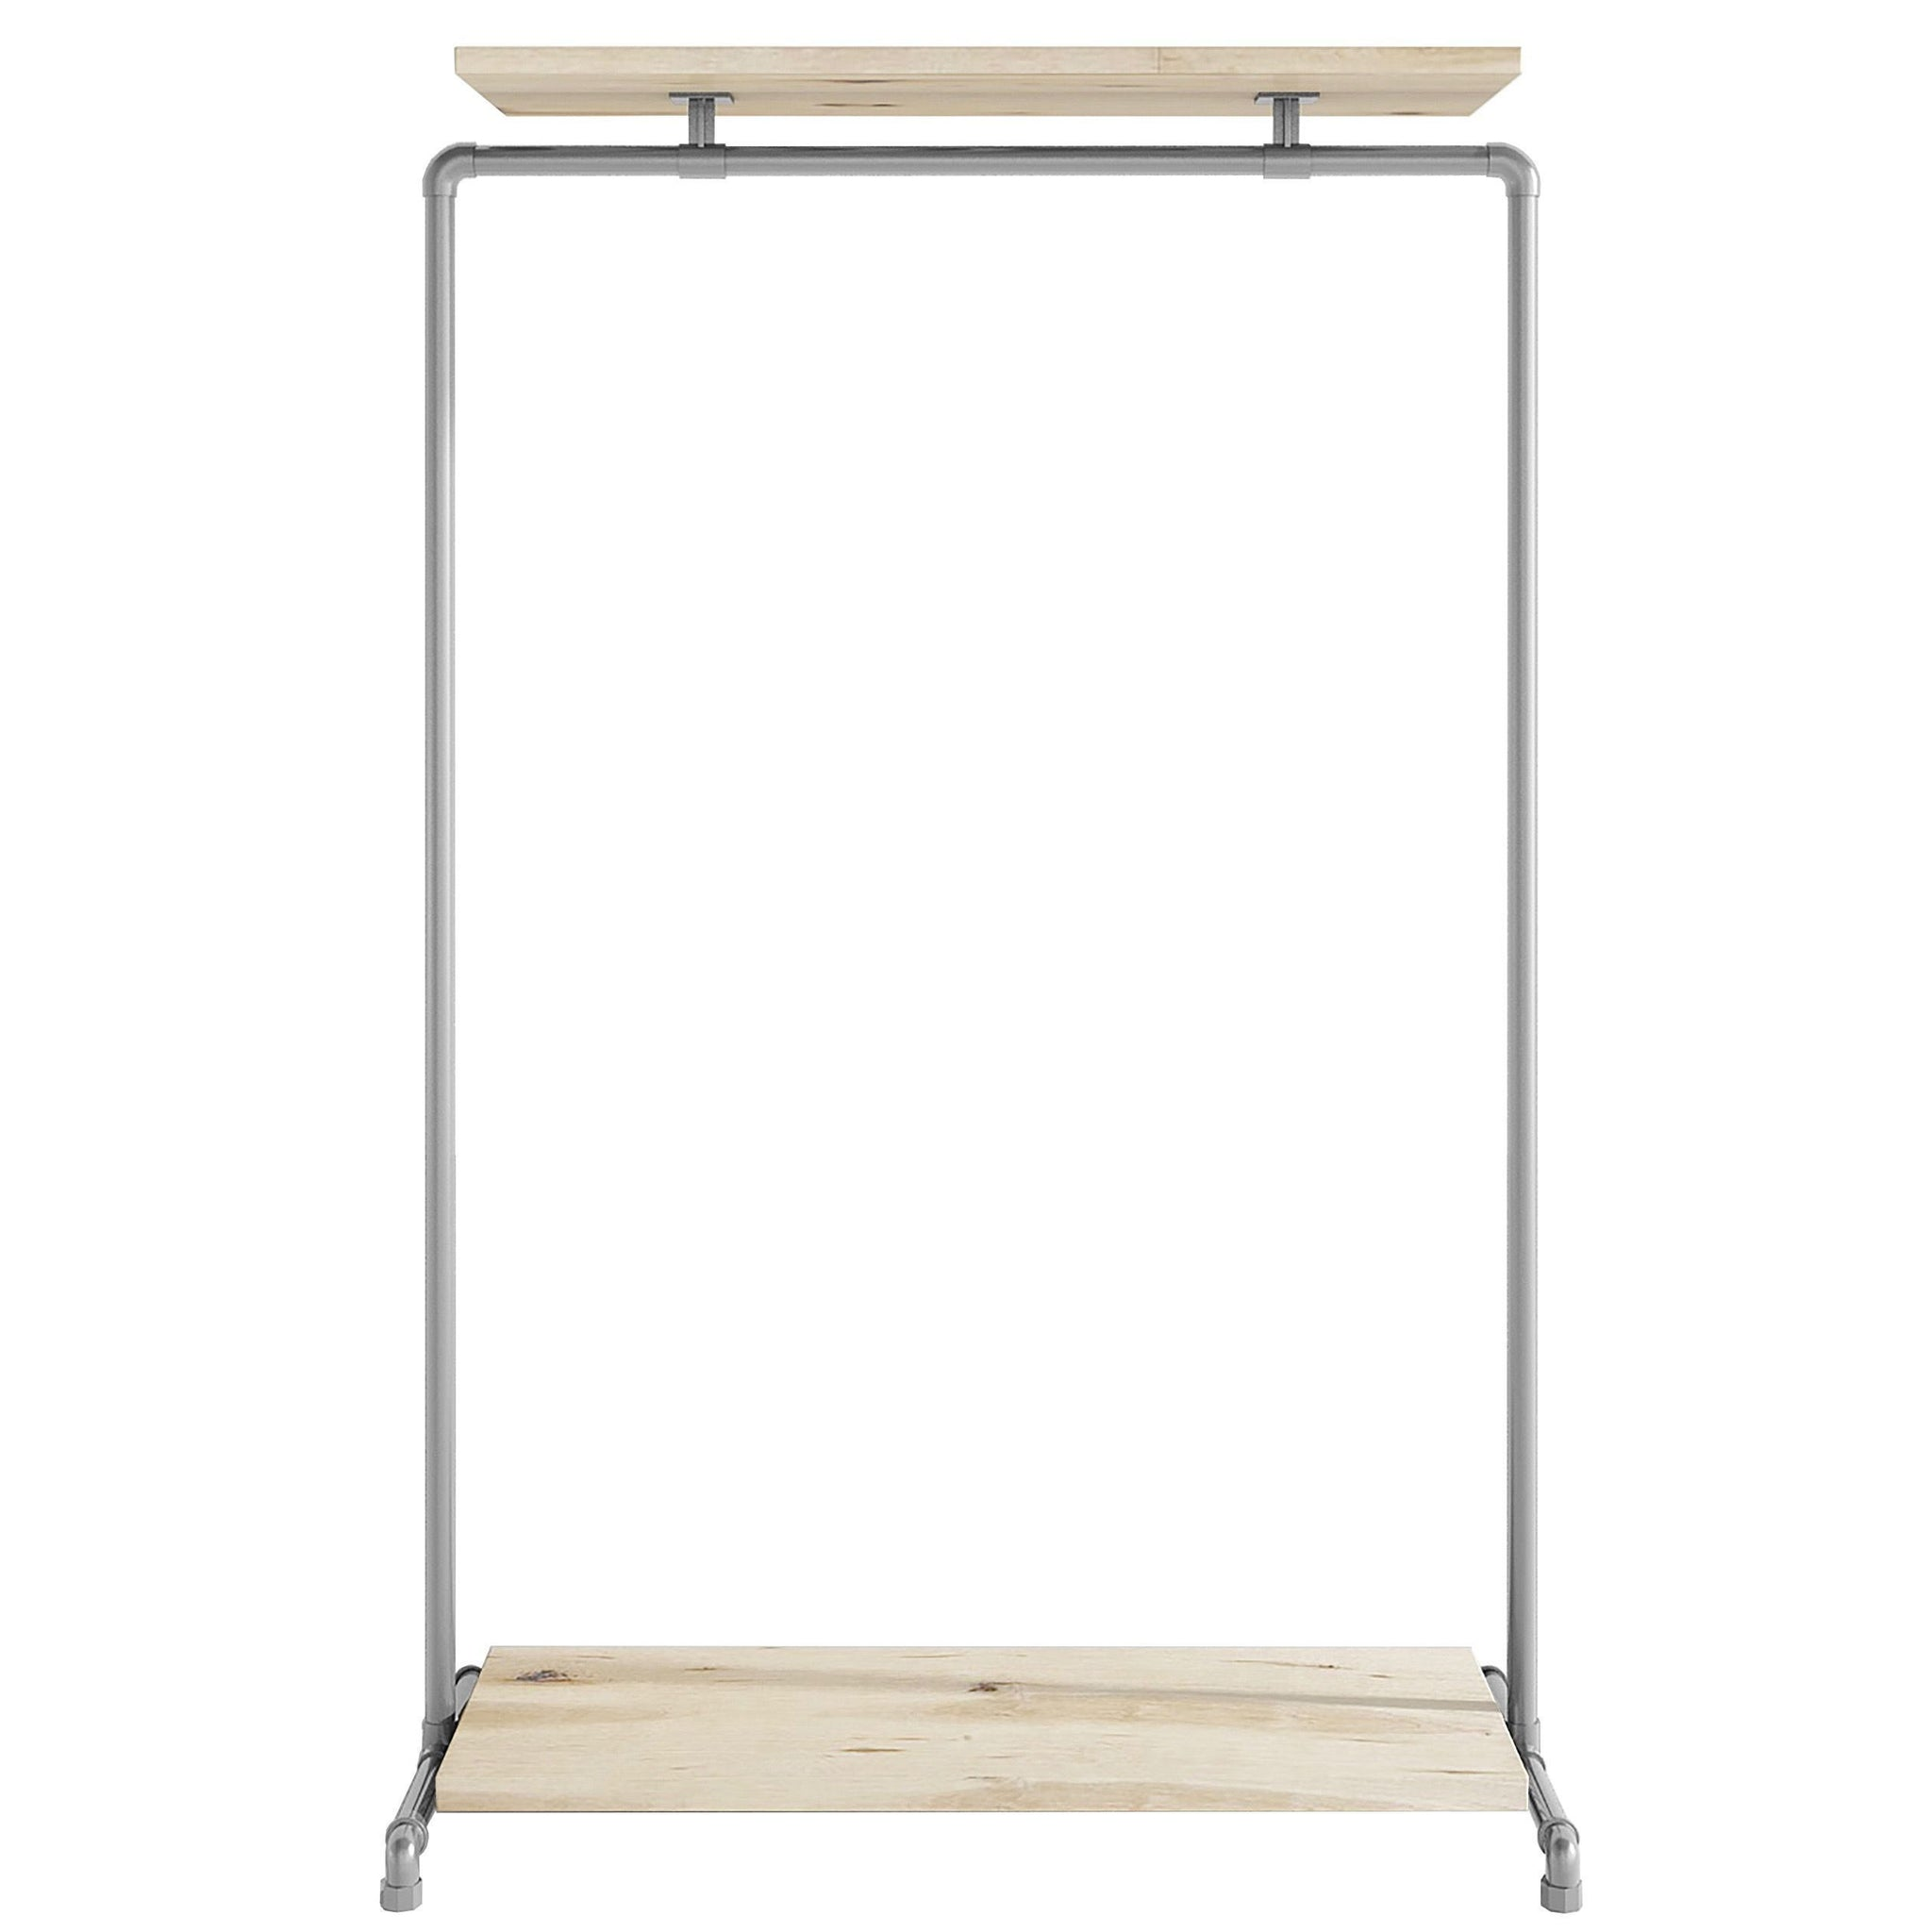 Ziito Clothes Rail C1 / 100 cm / Uden Wood Double Shelf Tøjstativ